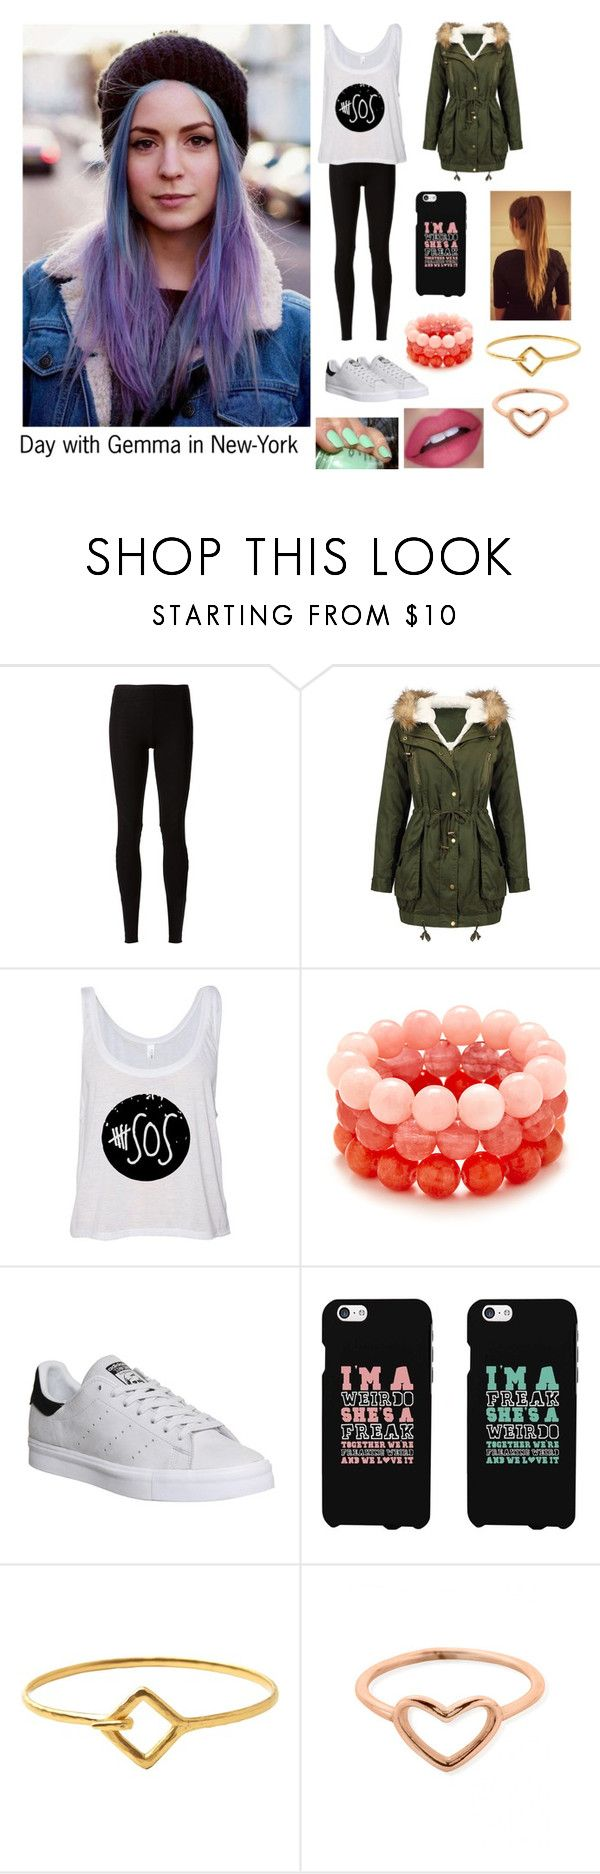 """Day With Gemma In New-York"" by hazzgirl03 ❤ liked on Polyvore featuring beauty, Rick Owens Lilies, adidas, Samsung, Toast, ChloBo, claire's, OneDirection, harrystyles and gemmastyles"